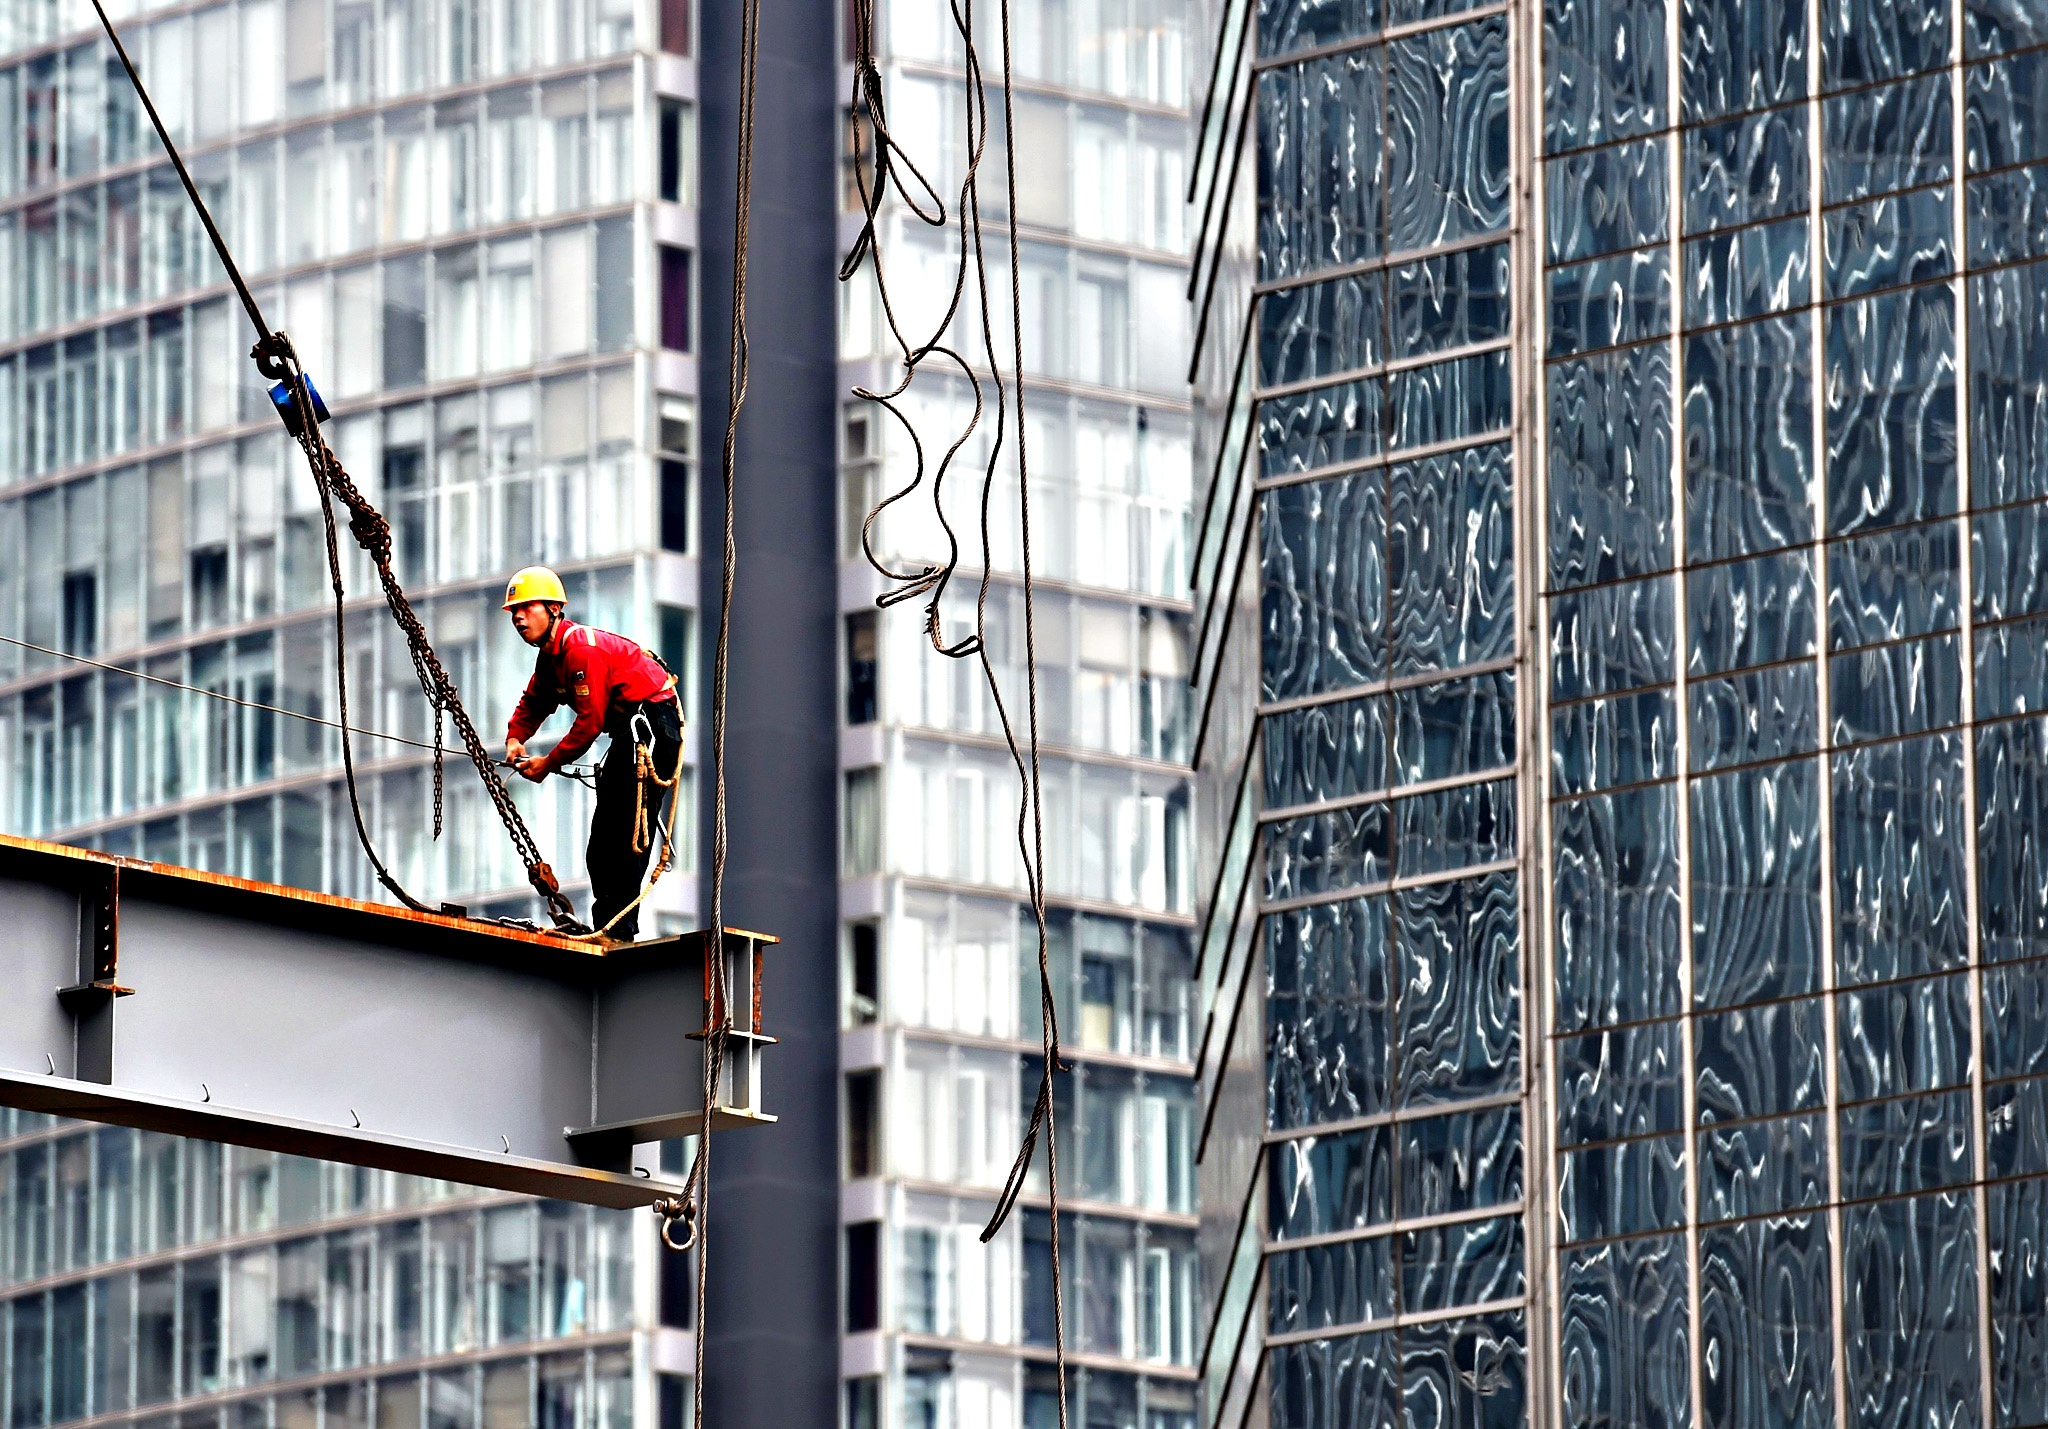 A worker stands on a beam on a construction site in Beijing on Wednesday. China's government says the world's second largest economy is expanding at its slowest for 25 years -- and according to analysts the real figures could be much lower -- and the slowdown has world markets rattled.